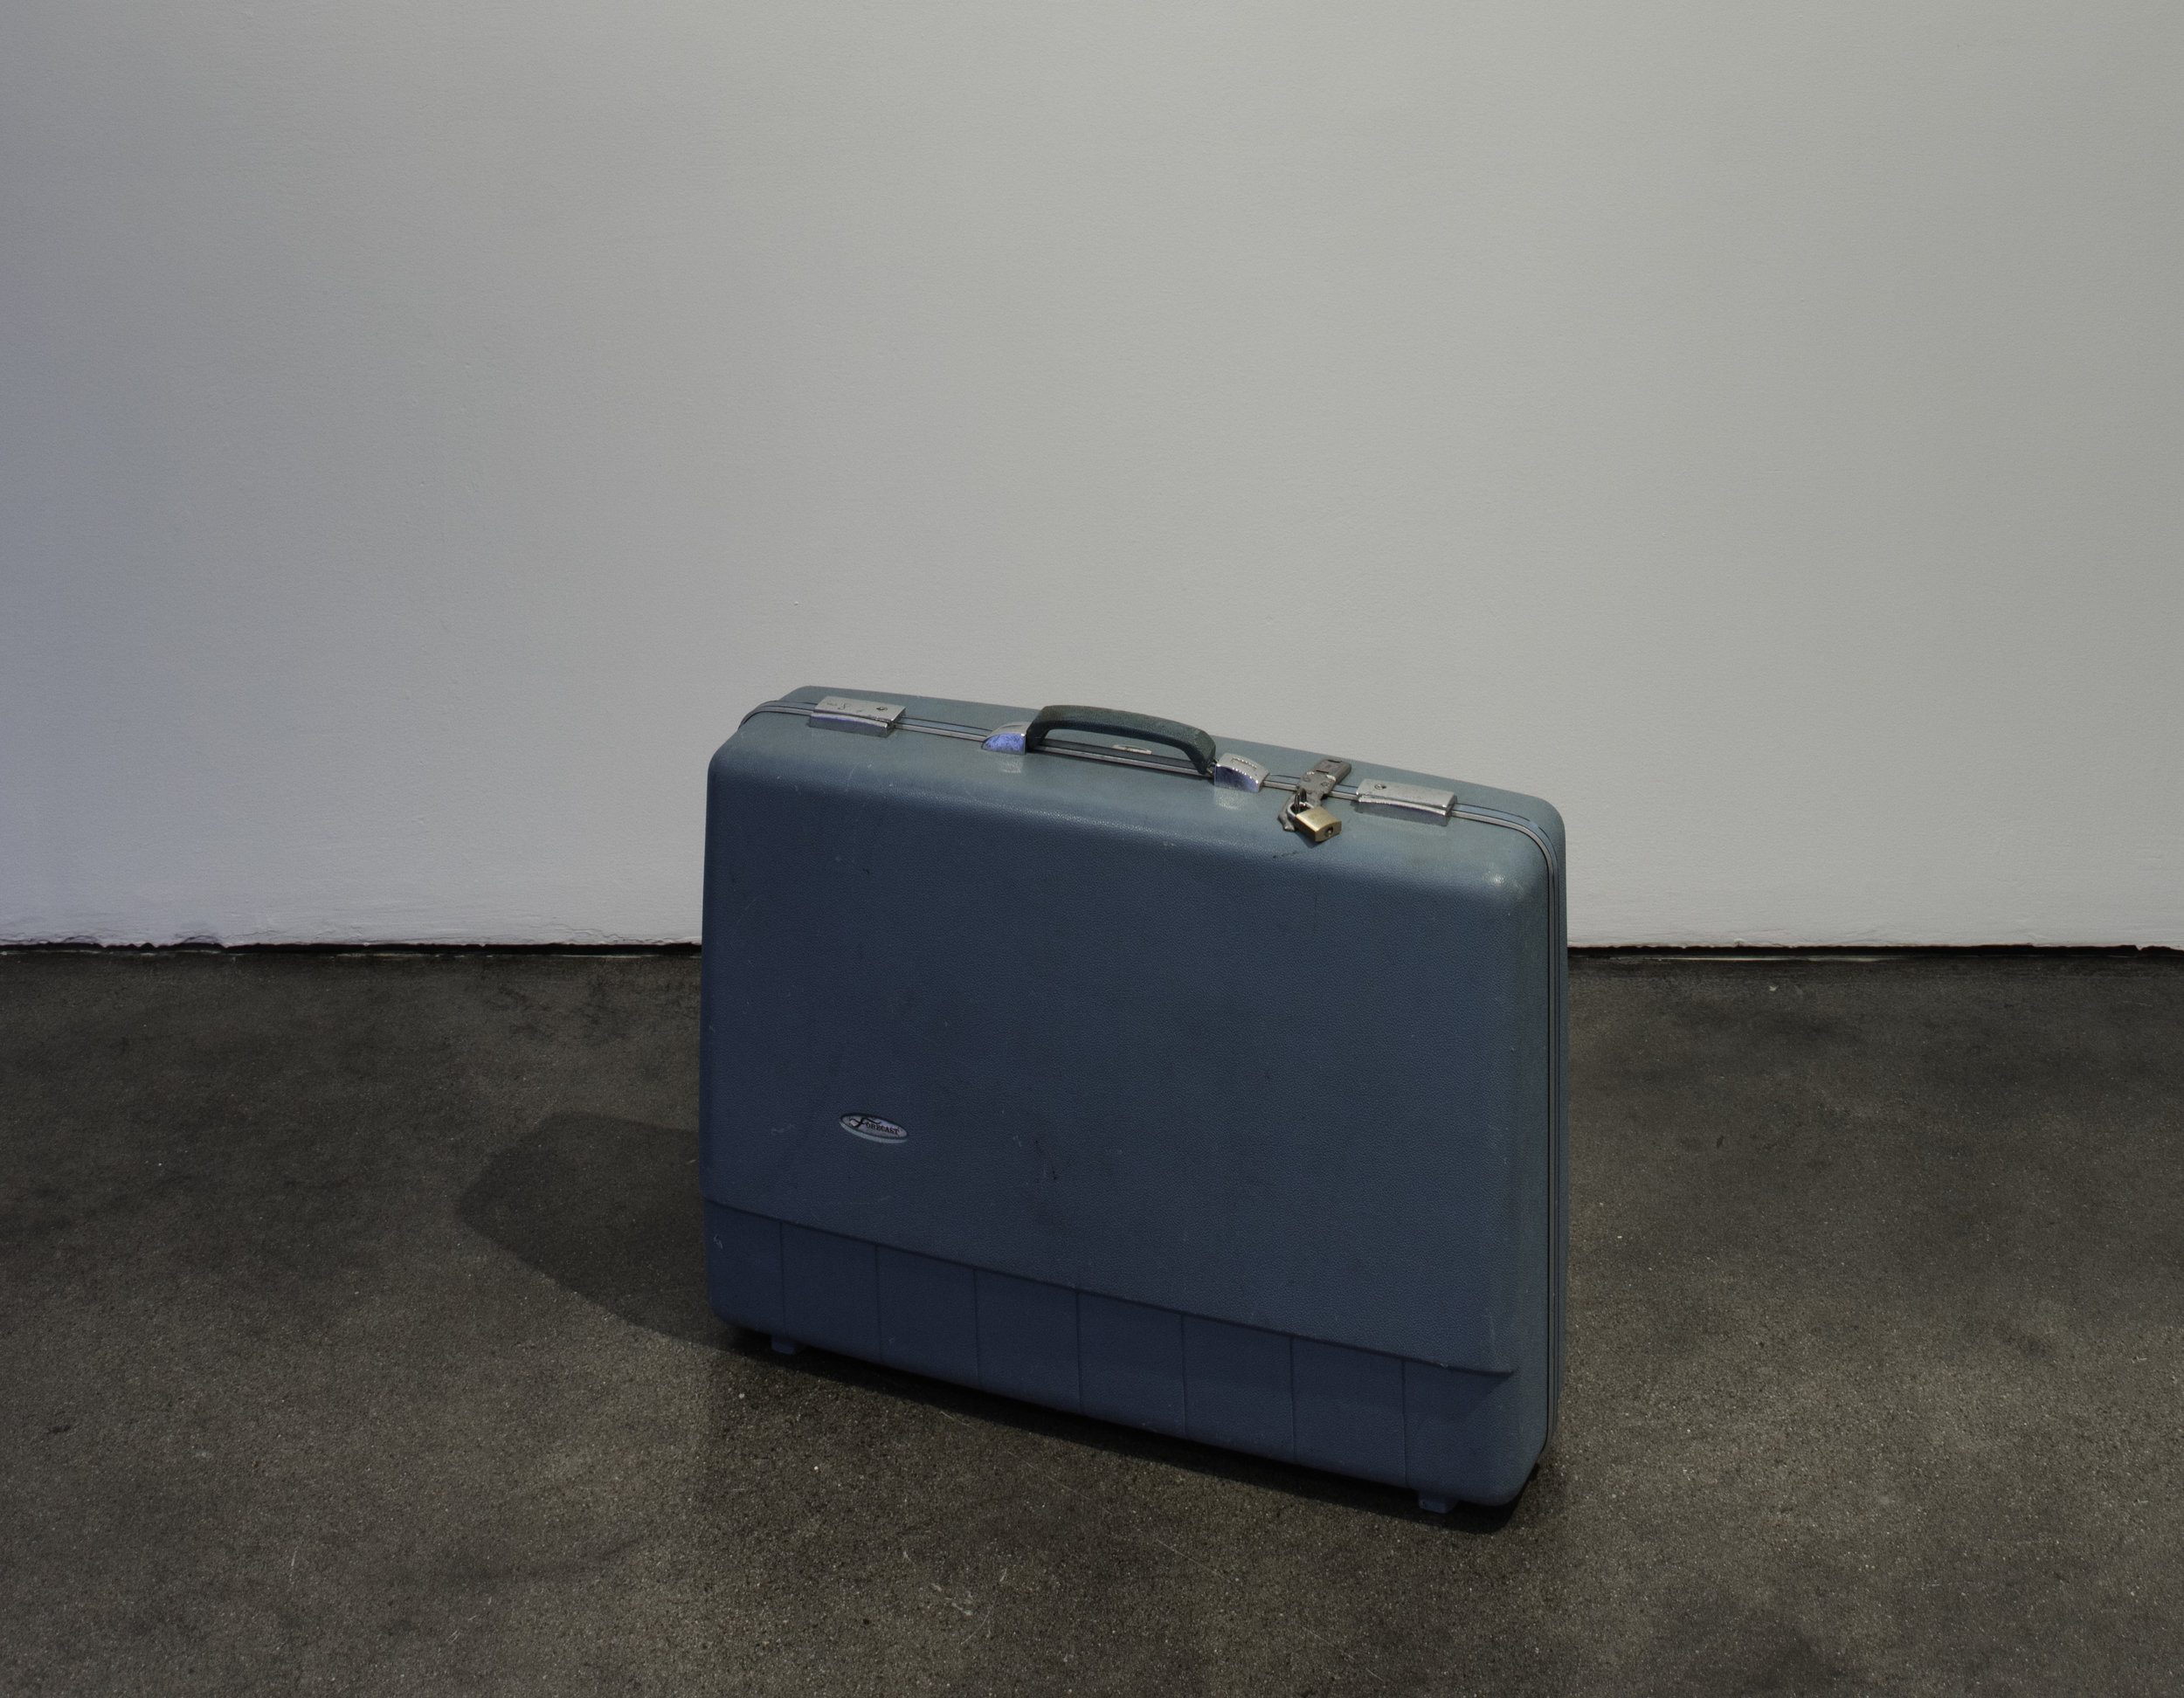 Lara Favaretto,  Lost & Found , 1998, Suitcase, Courtesy Museum of Contemporary Art Santa Barbara. Photo: Brian Forrest